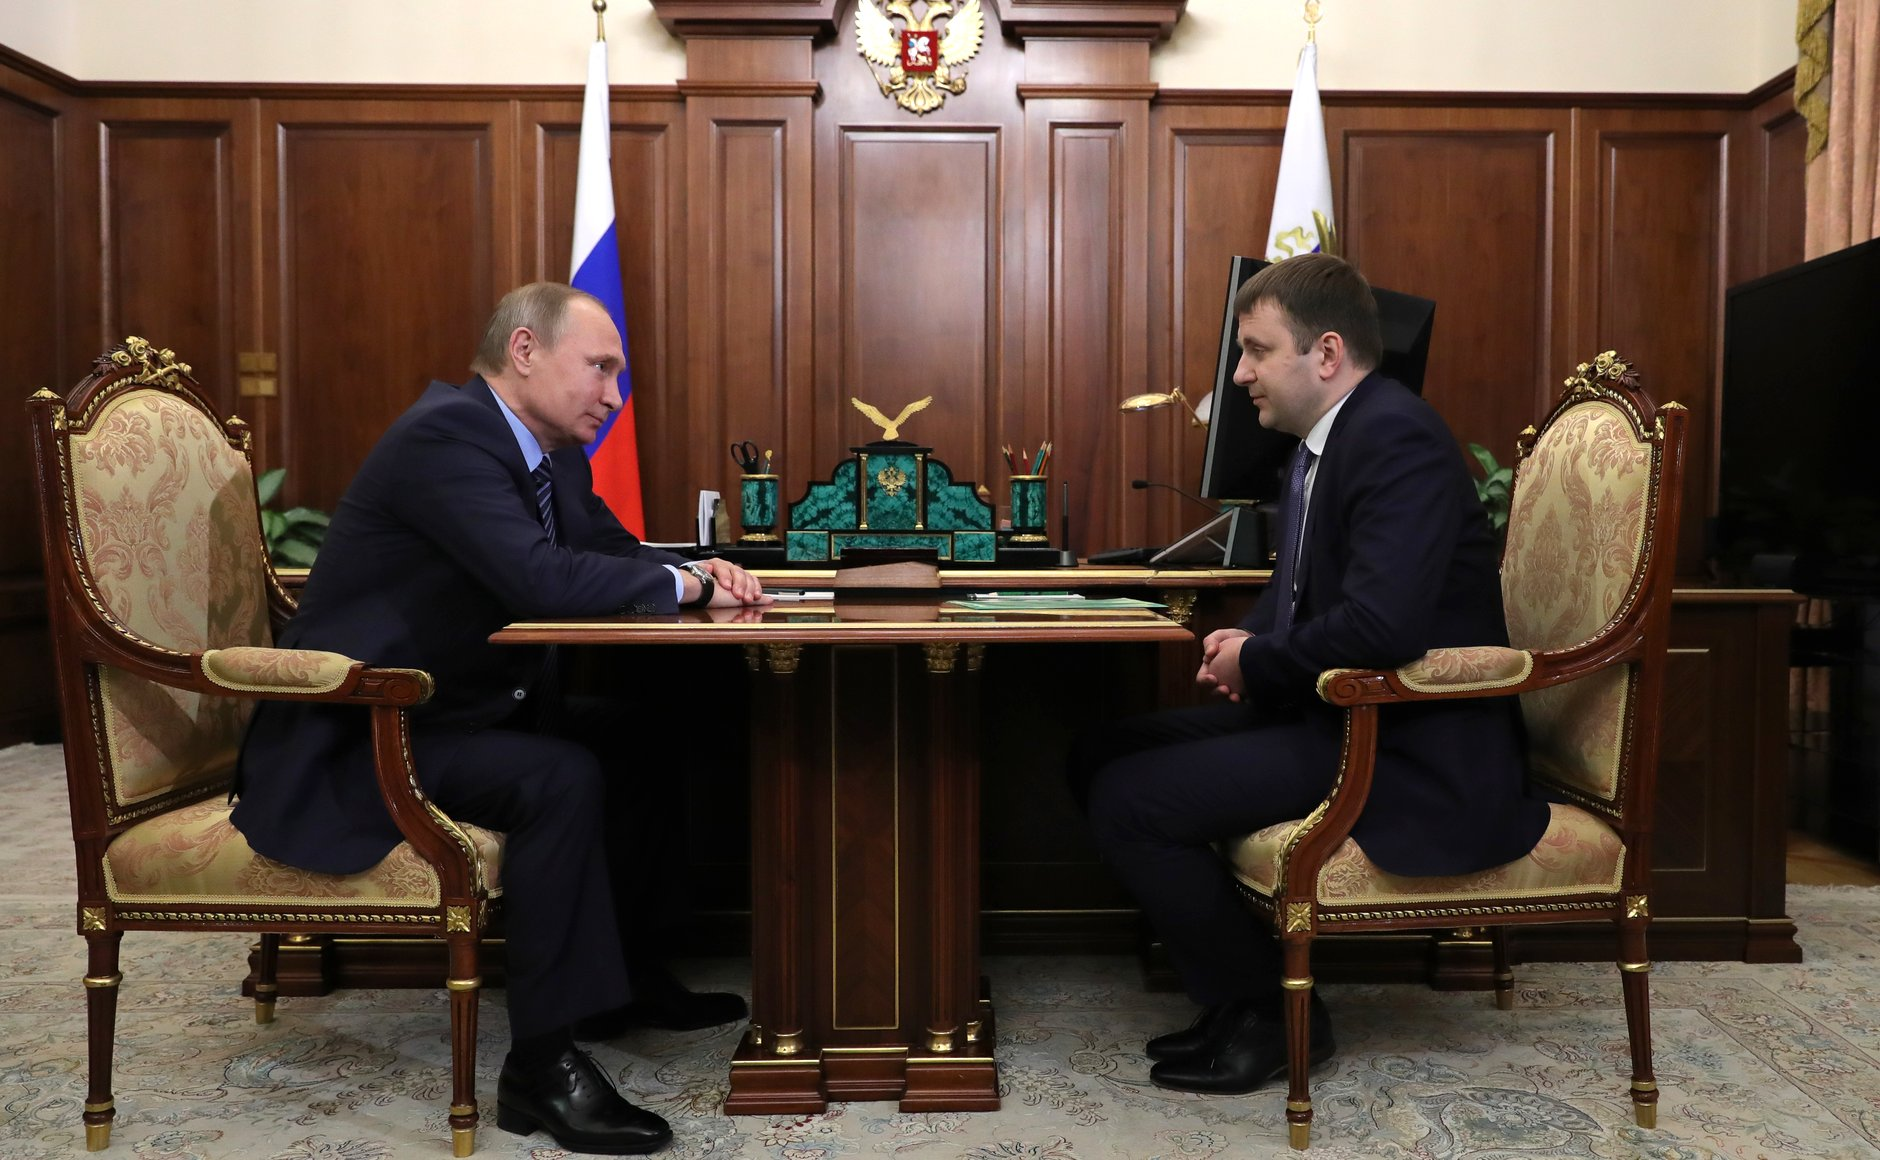 Russian President Vladimir Putin signed a decree appointing Maxim Oreshkin to the office of the Minister of Economic Development.